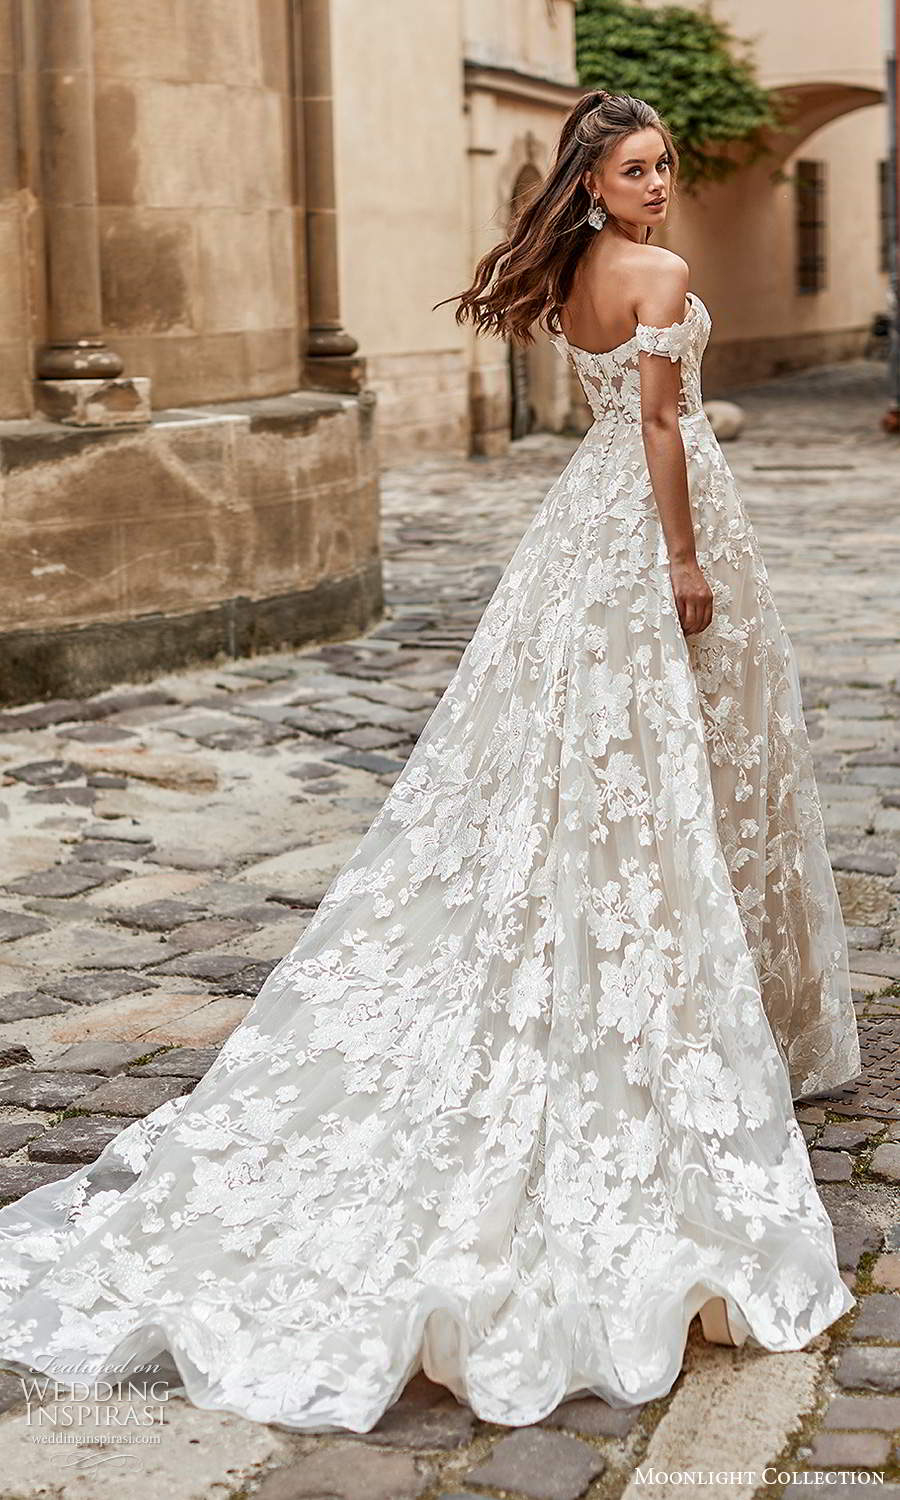 moonlight collection spring 2021 bridal off shoulder straps sweetheart neckline fullly embellished a line ball gown wedding dress chapel train (8) bv